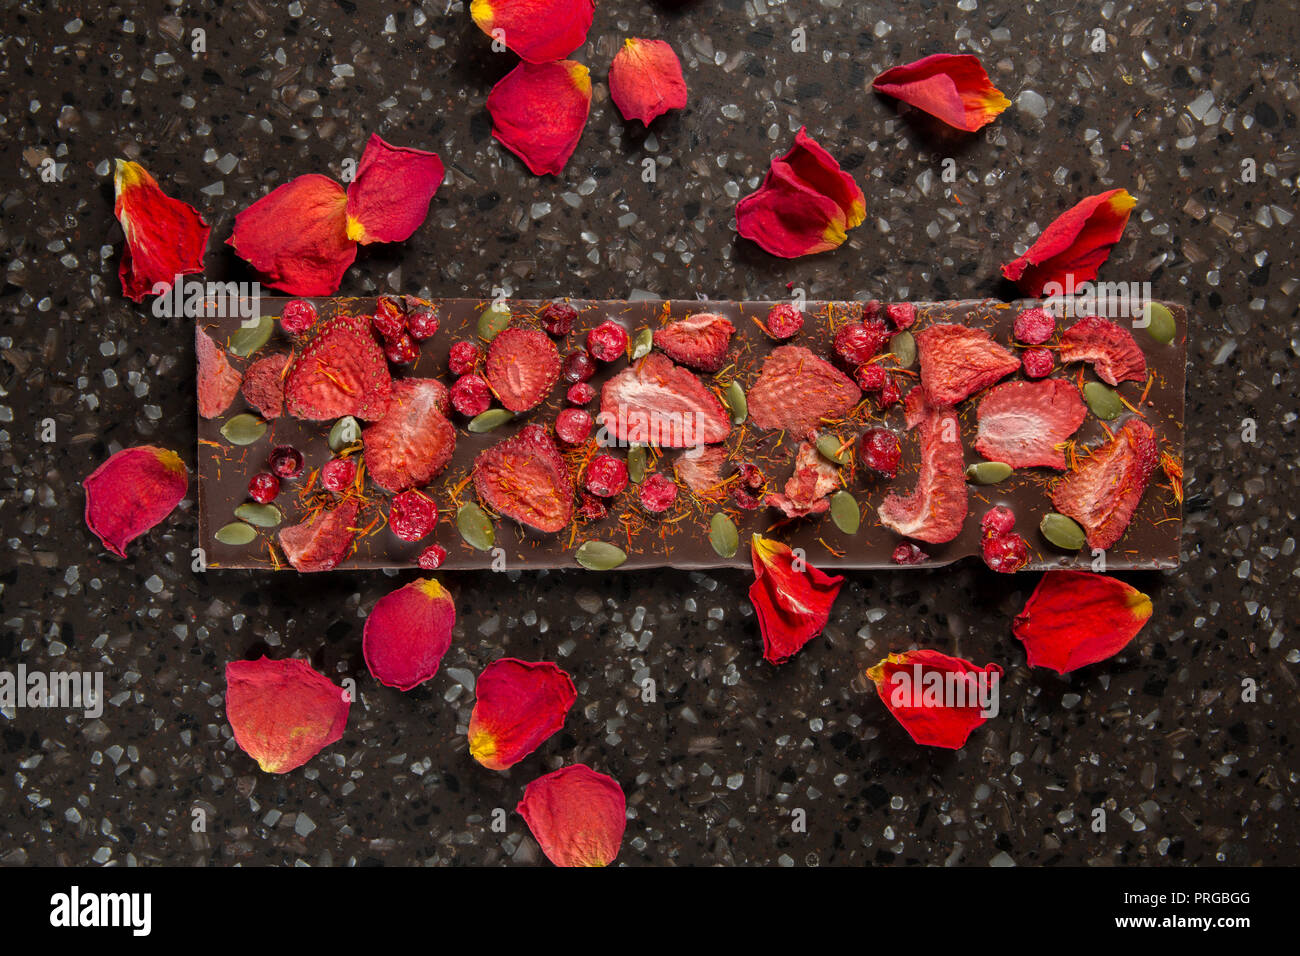 Handmade chocolate bar with dried strawberries and cranberries in rose petals. - Stock Image